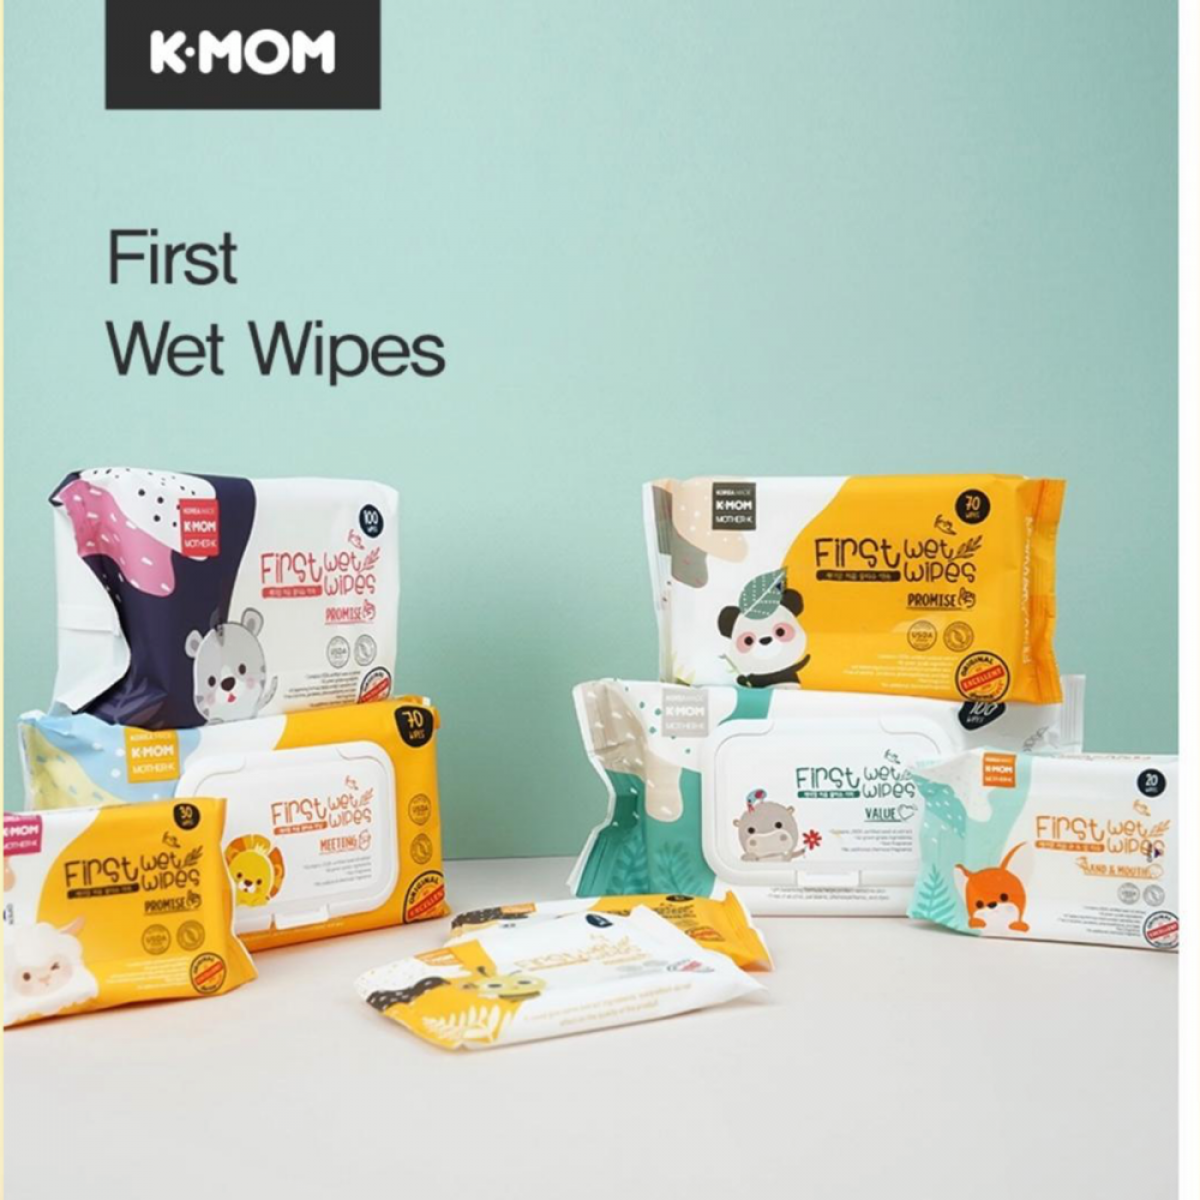 K-MOM First Wet Wipes Promise - 10pcs